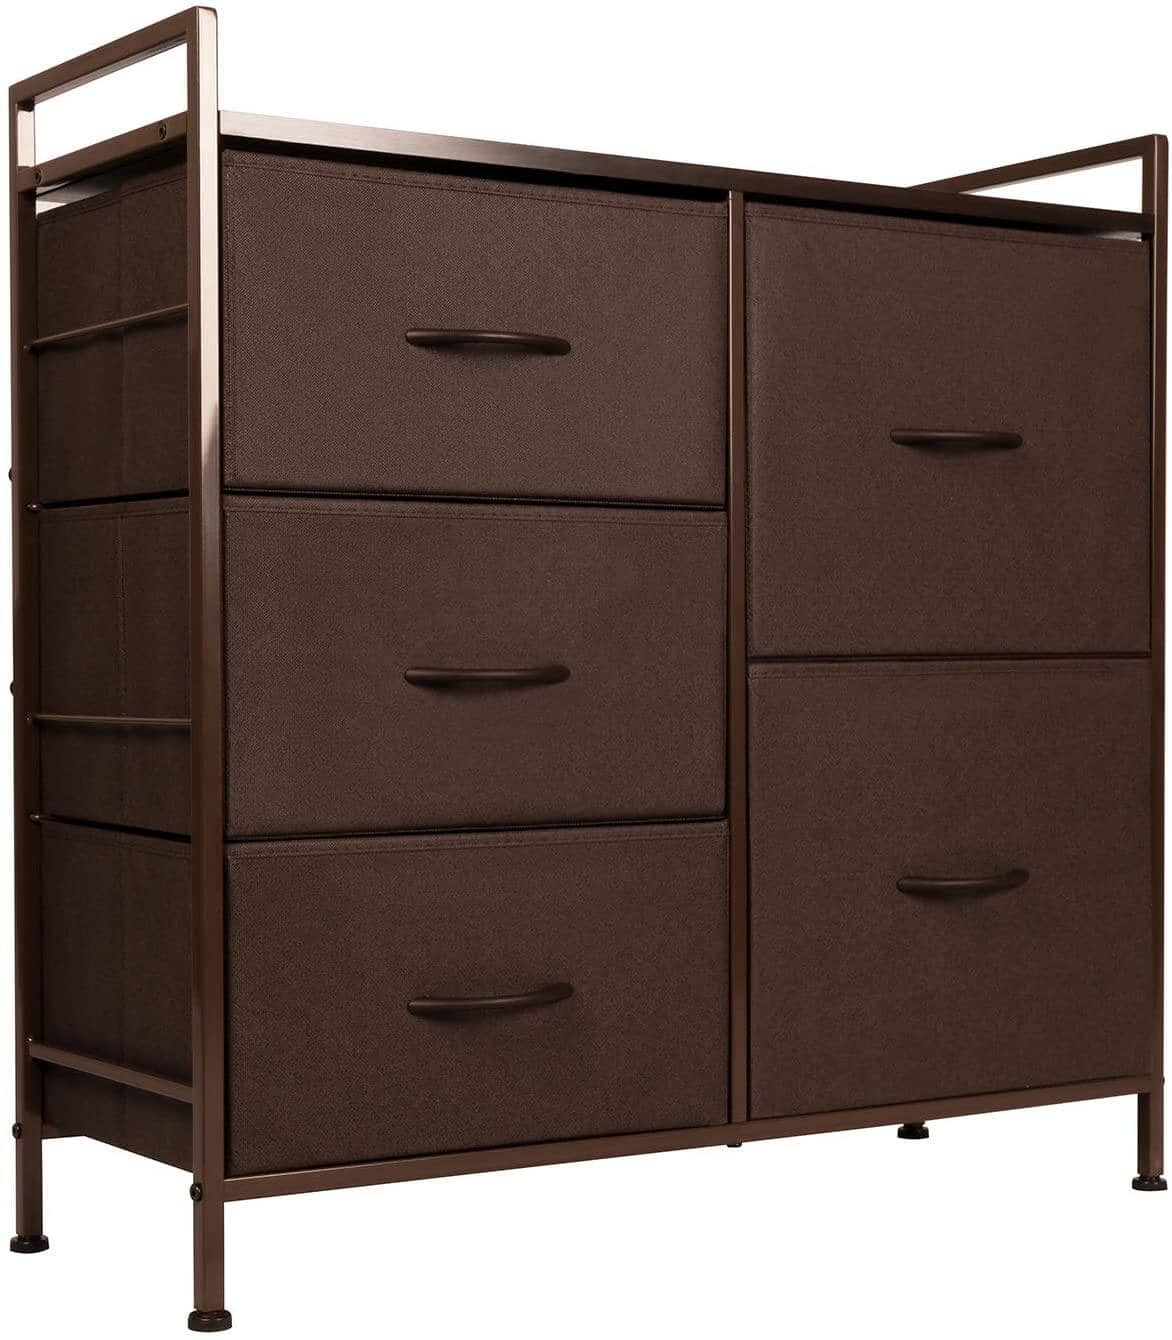 Dresser w/ 5 Drawers Fabric Storage Tower (Brown) for $49.99 + Free Shipping